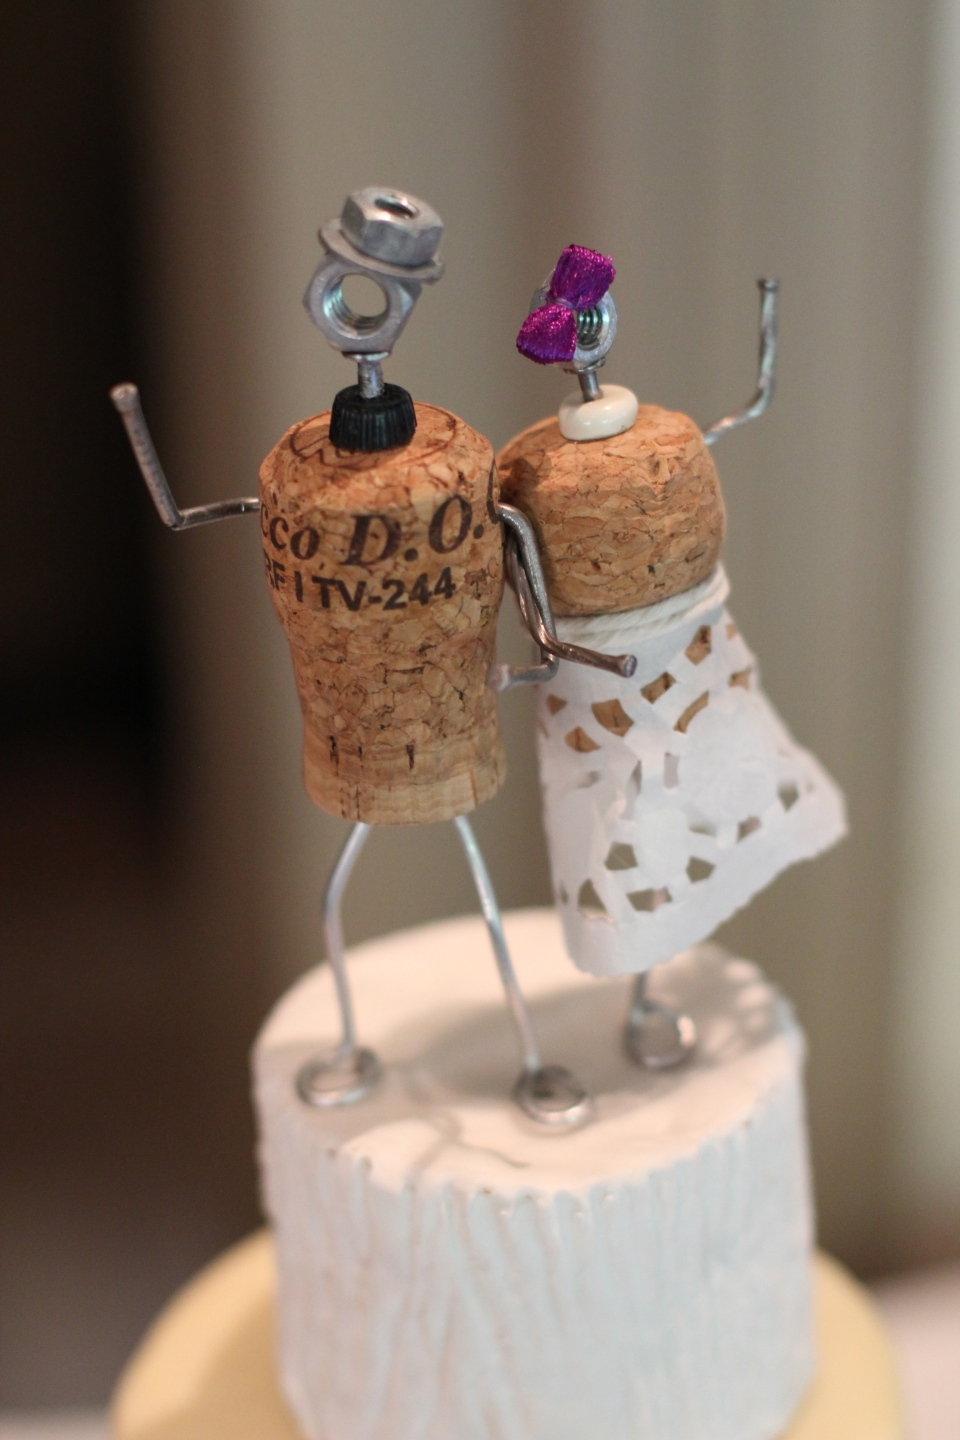 The adorable cake topper hand made by the groom!